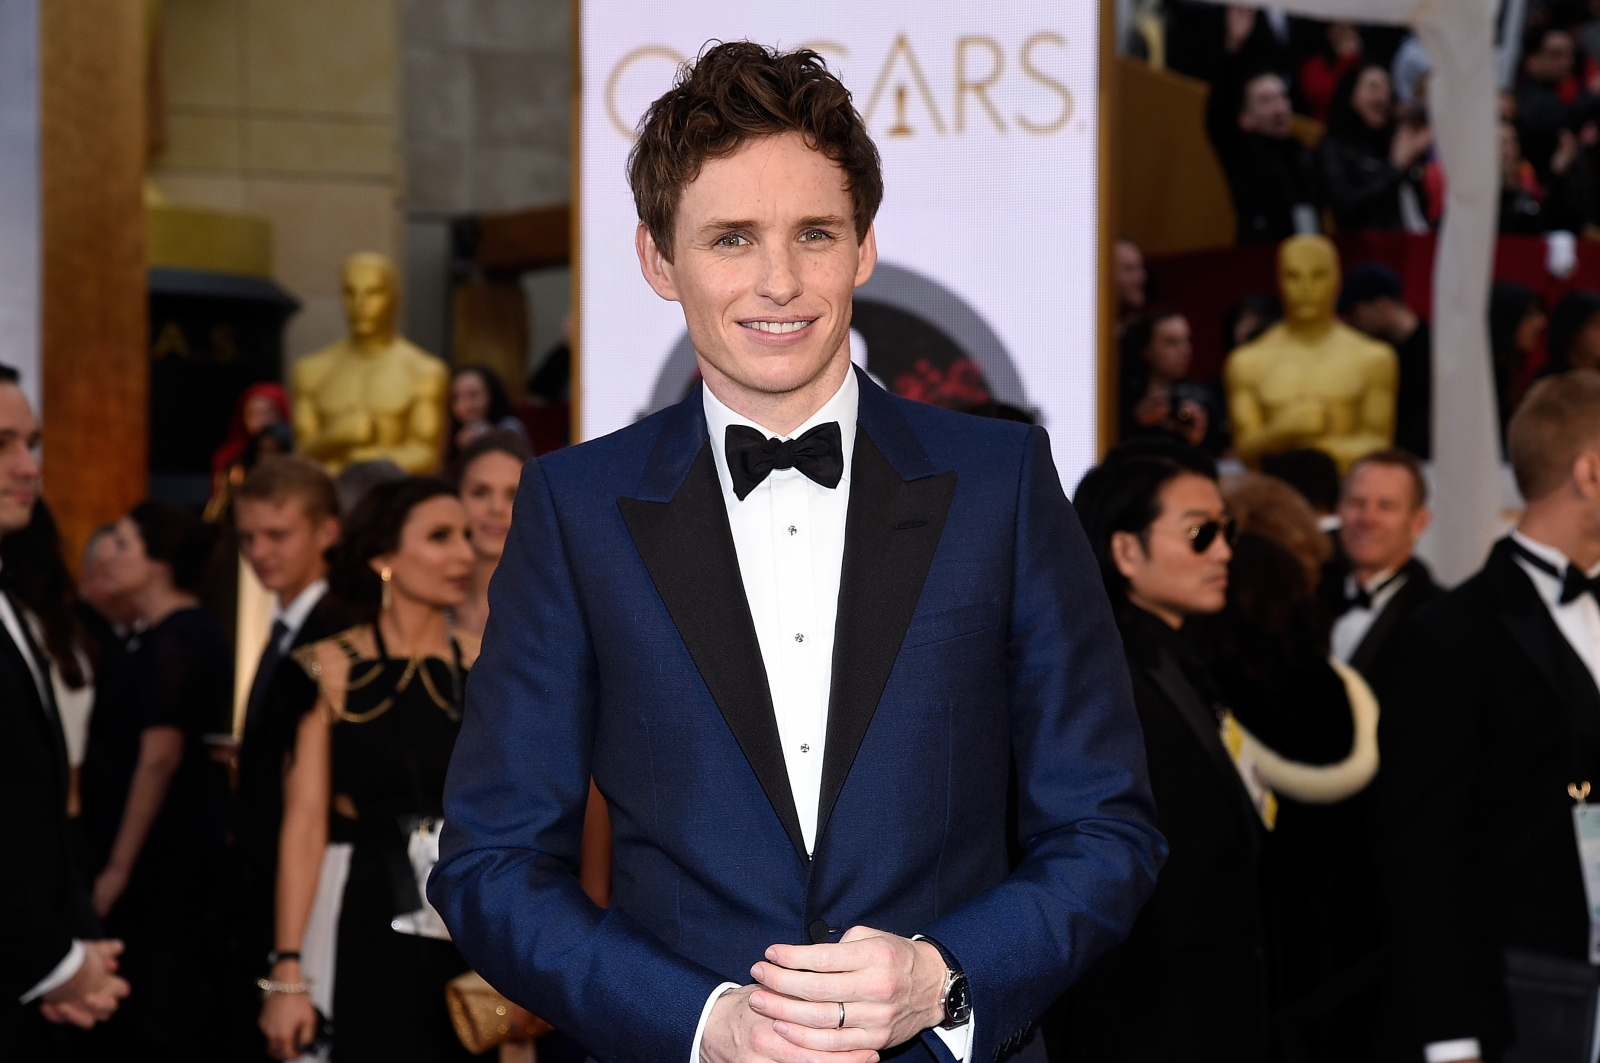 Eddie Redmayne confirmed as Newt Scamander